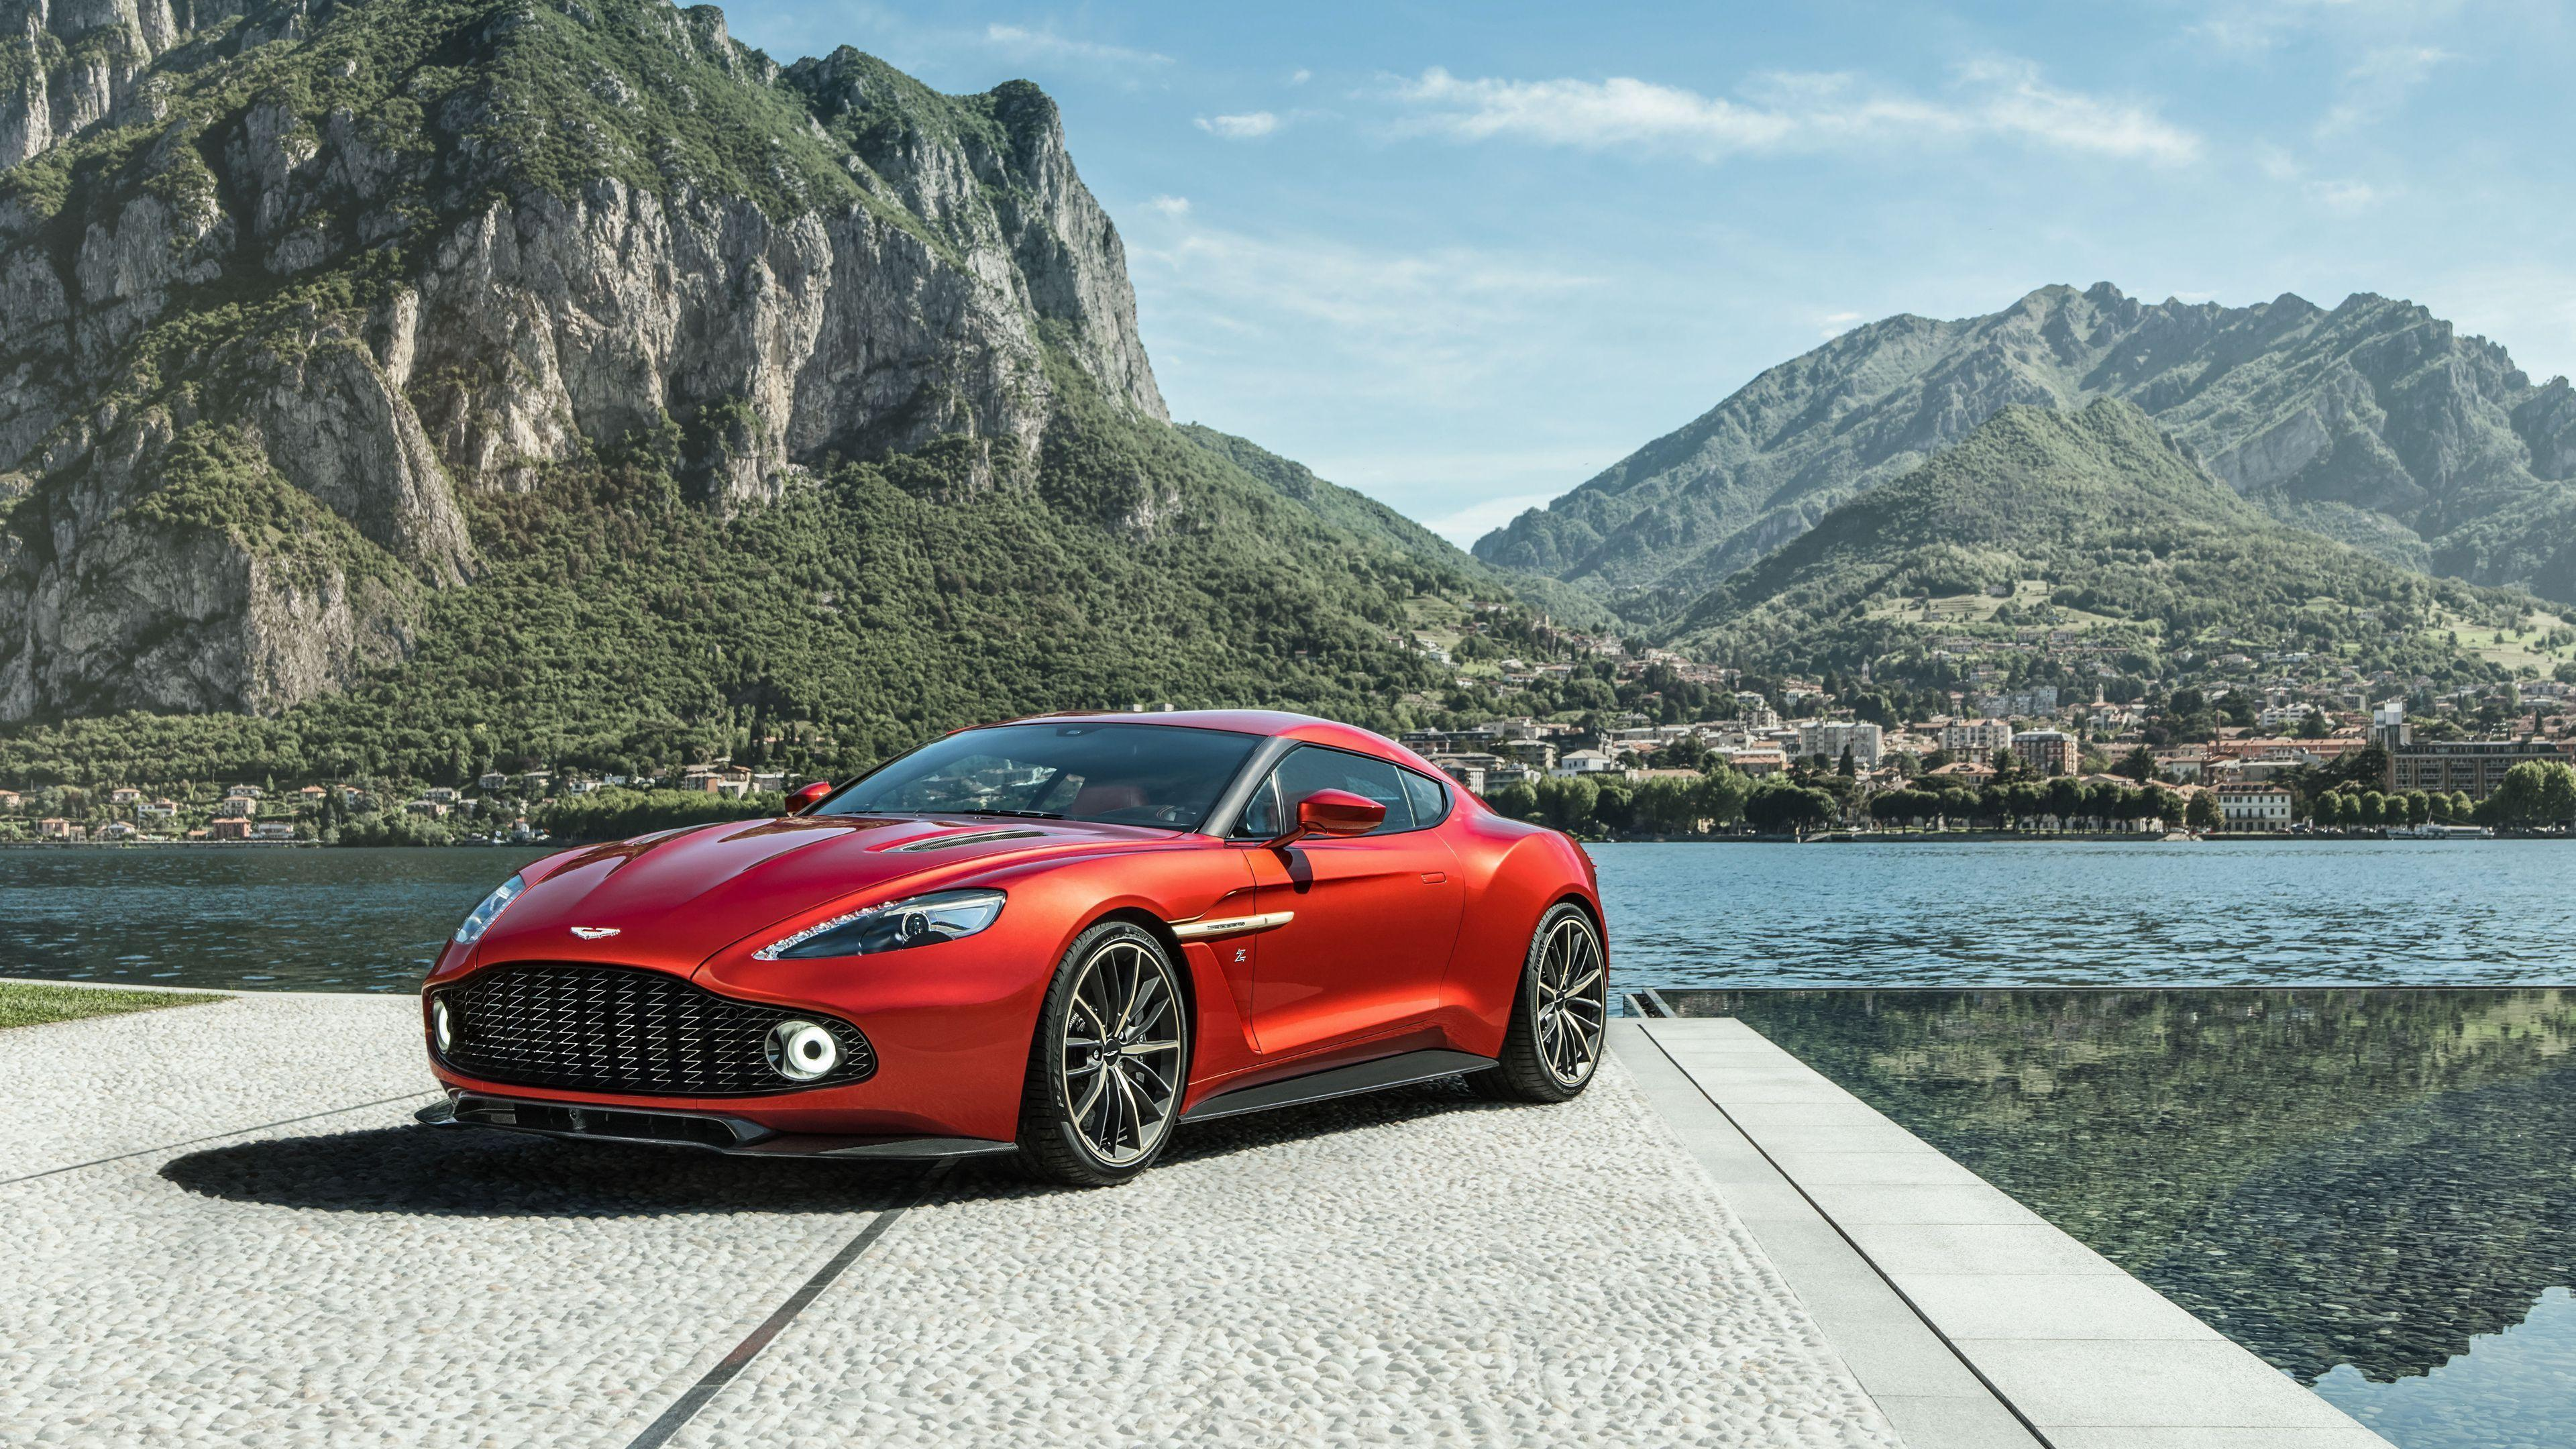 aston martin vanquish 2017 wallpapers - wallpaper cave